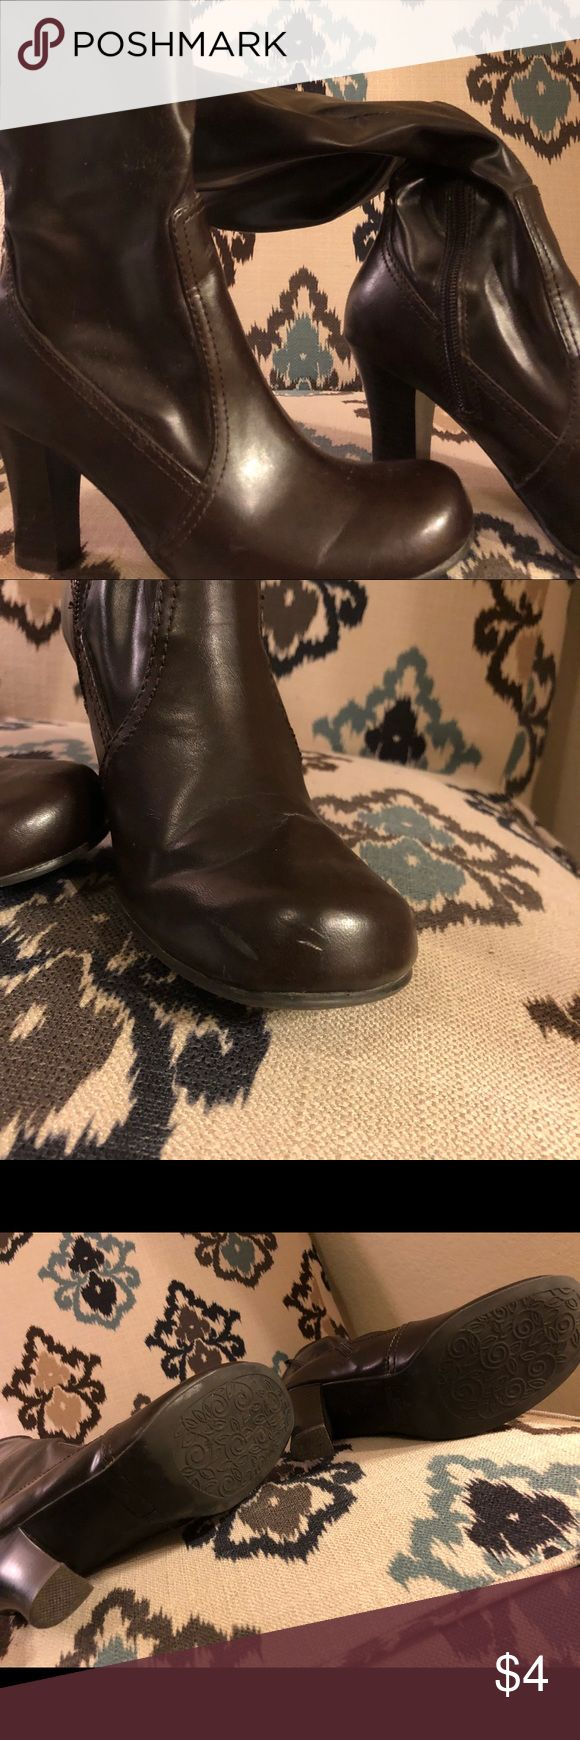 Brown boots w/ heel Good used condition. Small blemish on one toe of boot. So Wear It Declare It Shoes Heeled Boots